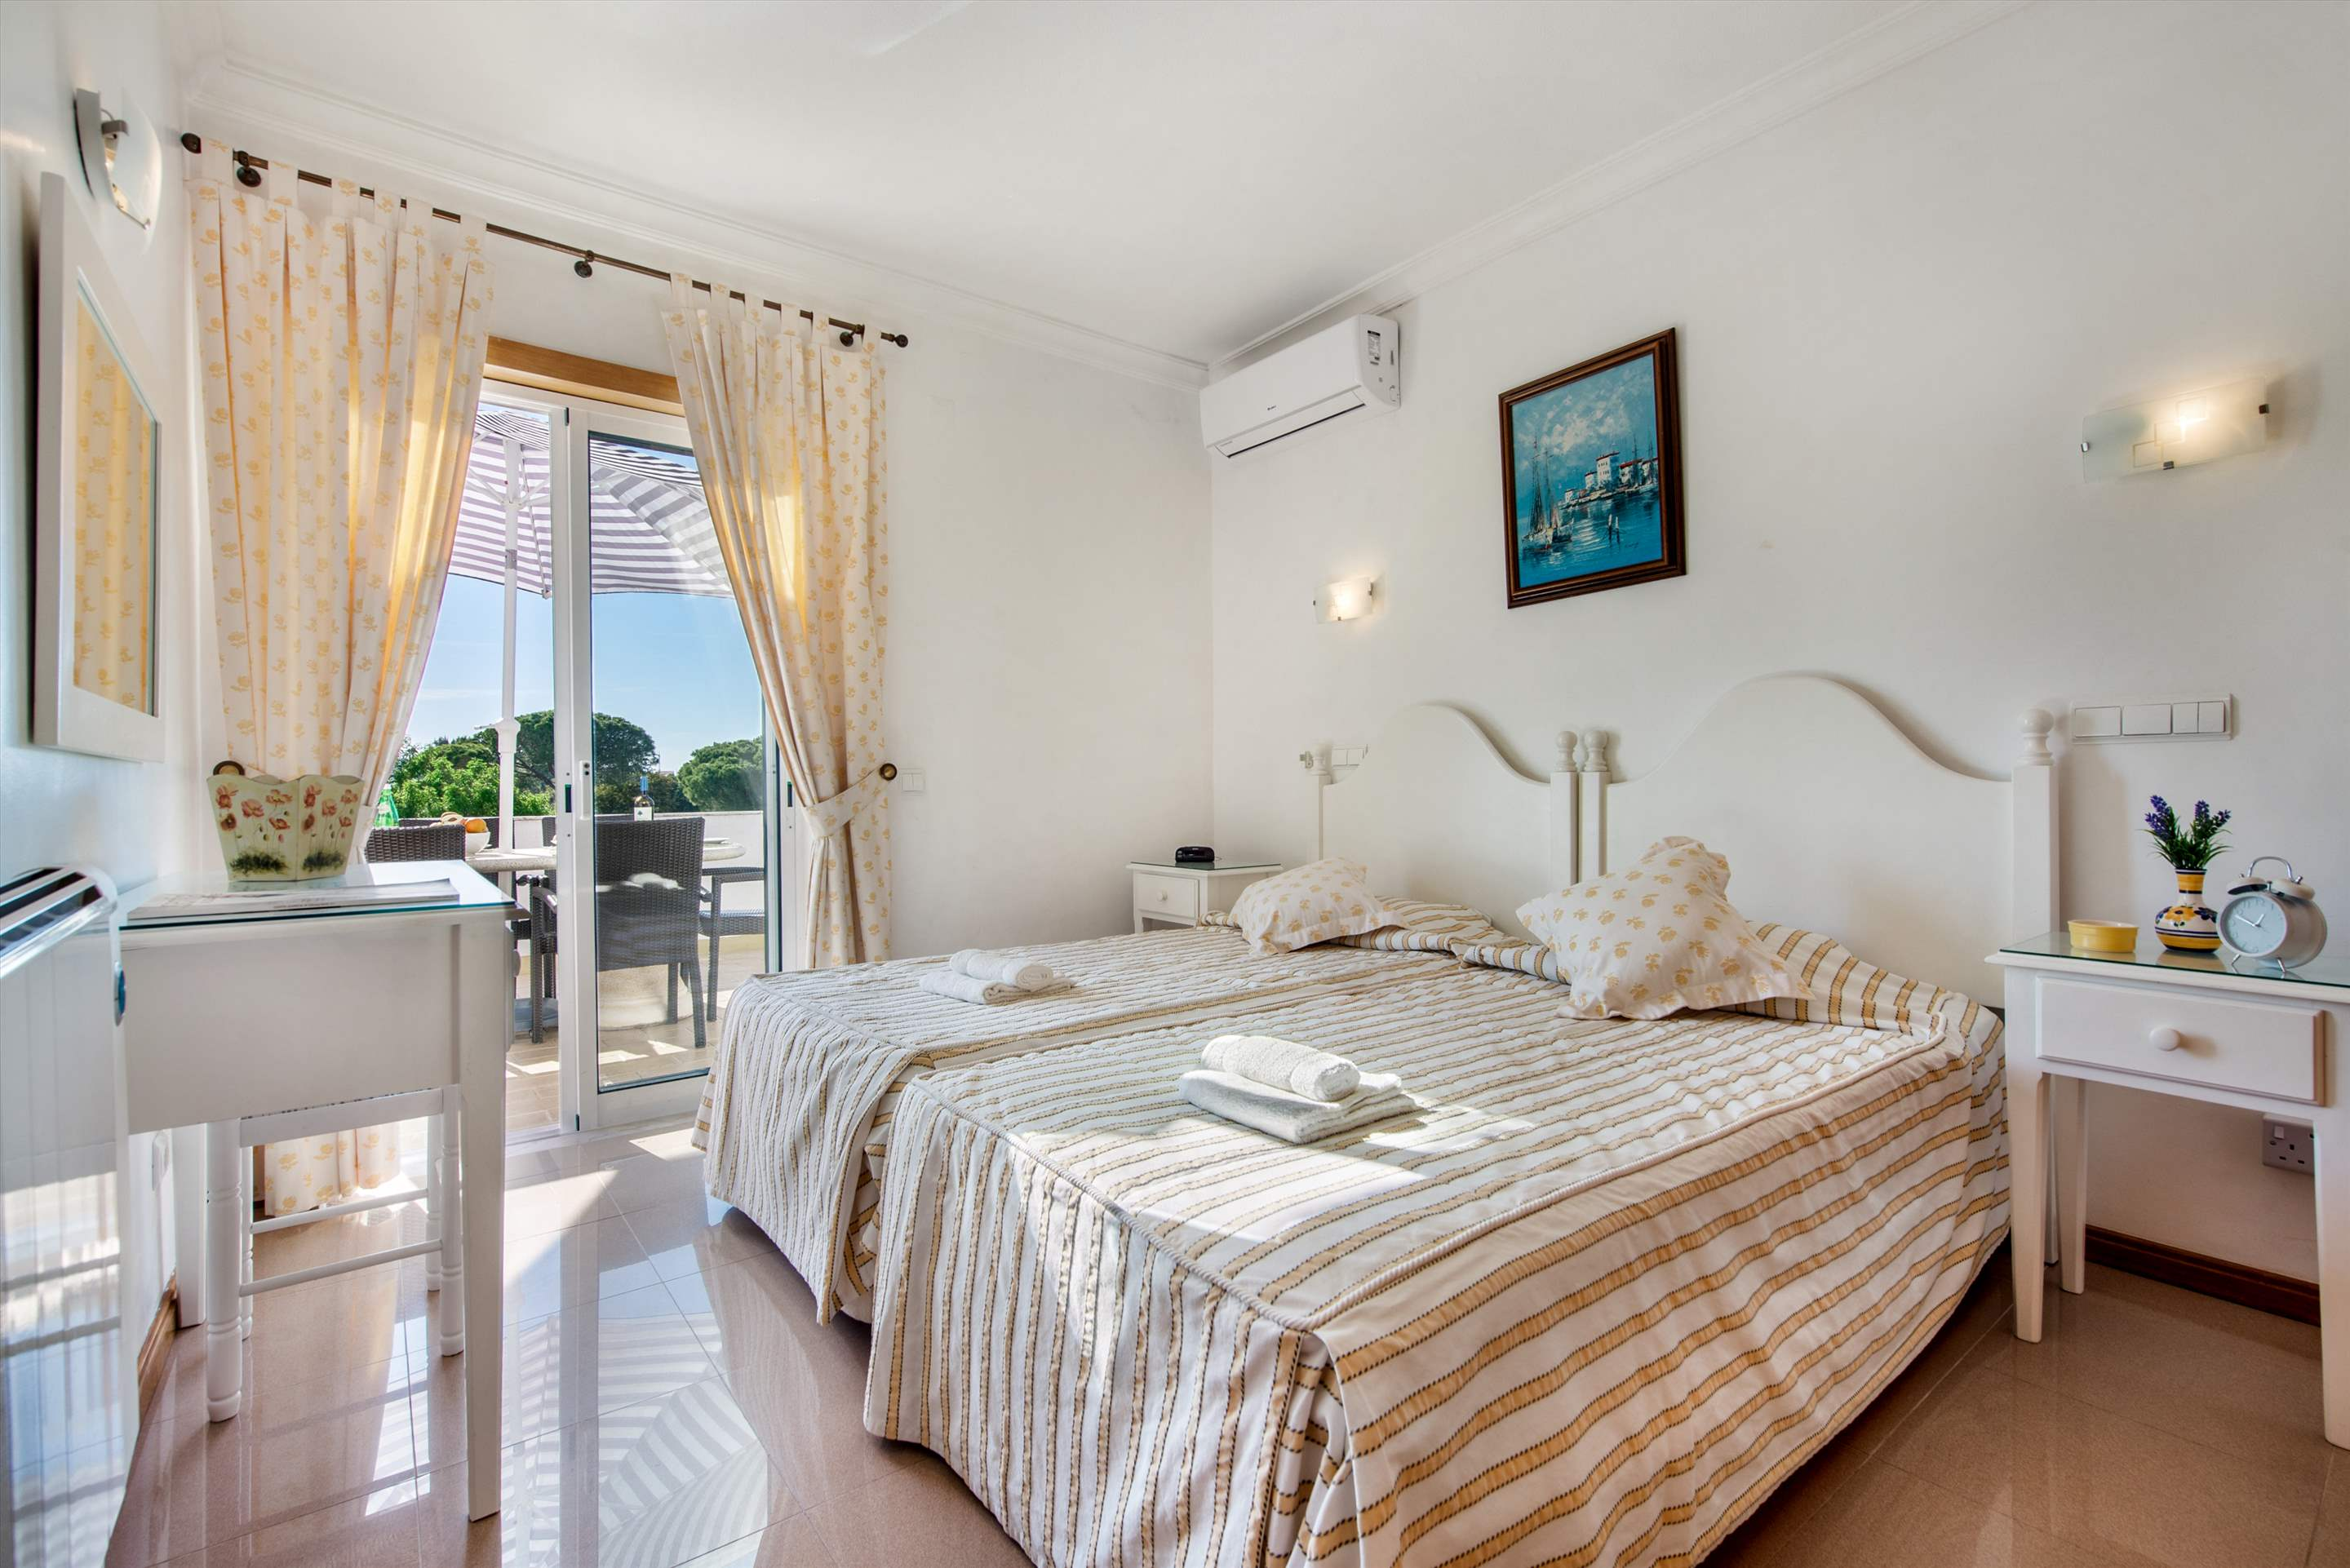 Apt 1E Gale Garden, For 5-6 Persons, 3 bedroom apartment in Gale, Vale da Parra and Guia, Algarve Photo #14